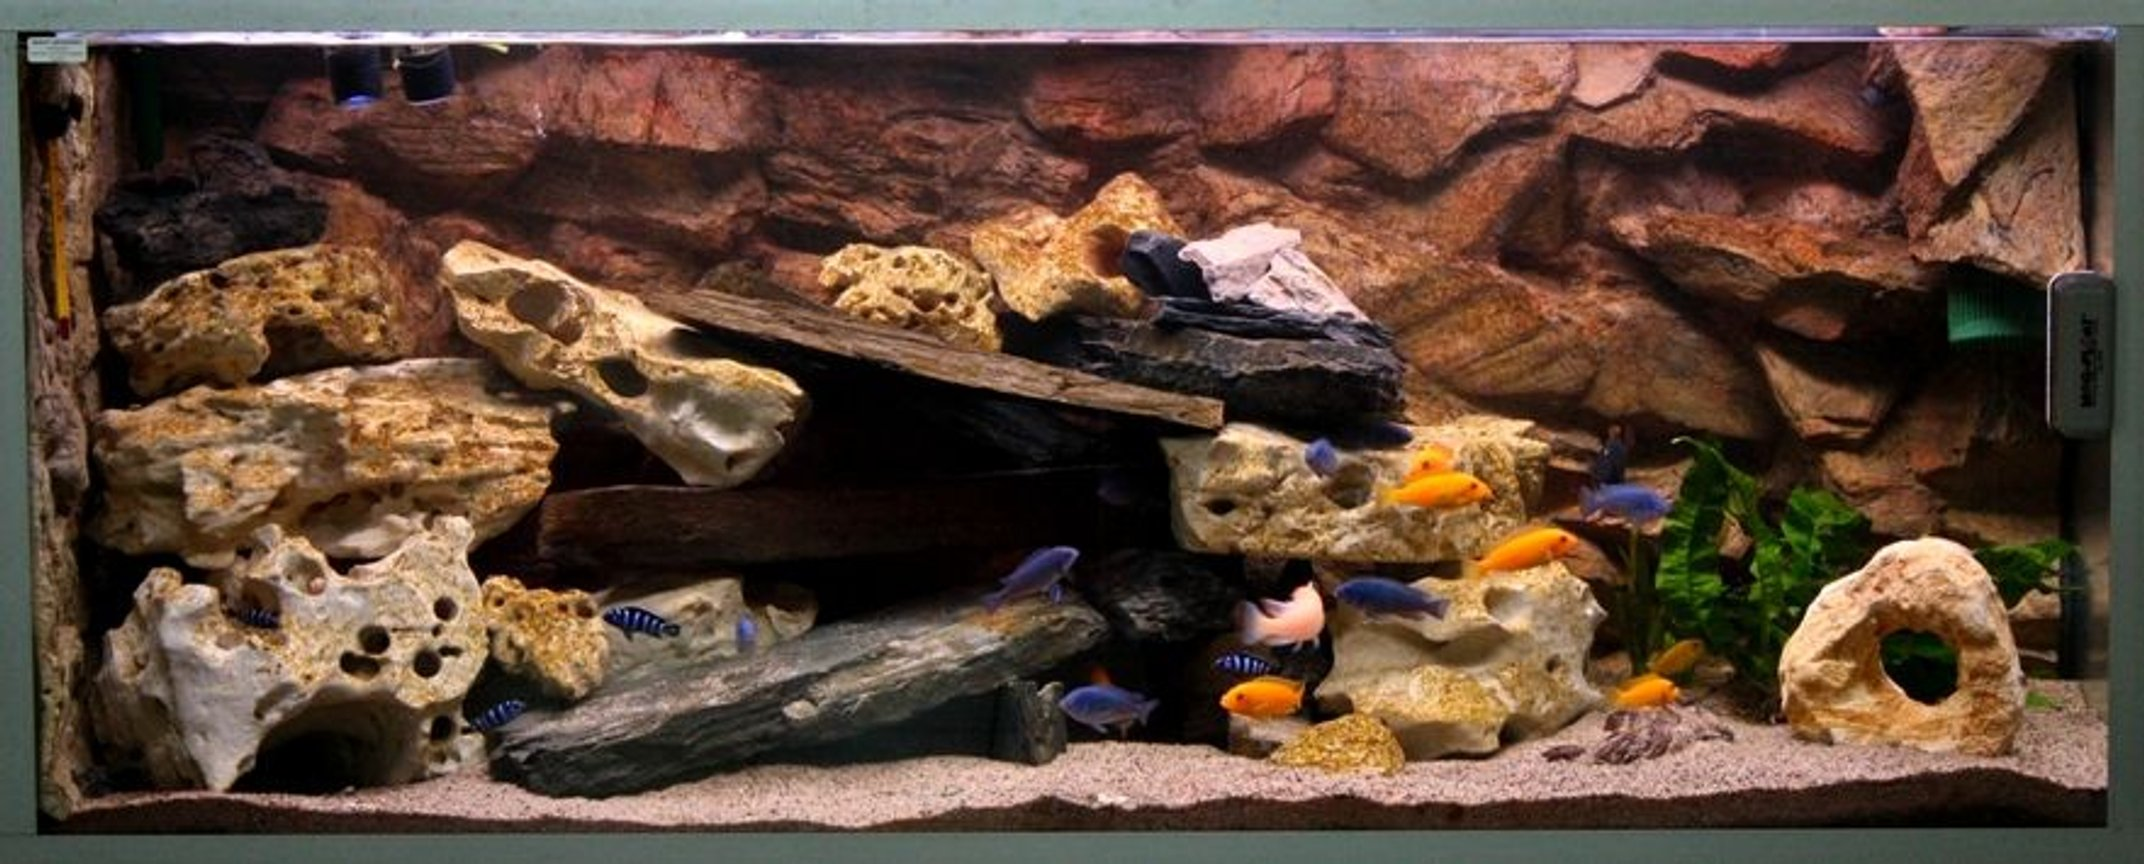 80 gallons freshwater fish tank (mostly fish and non-living decorations) - 2nd edition...